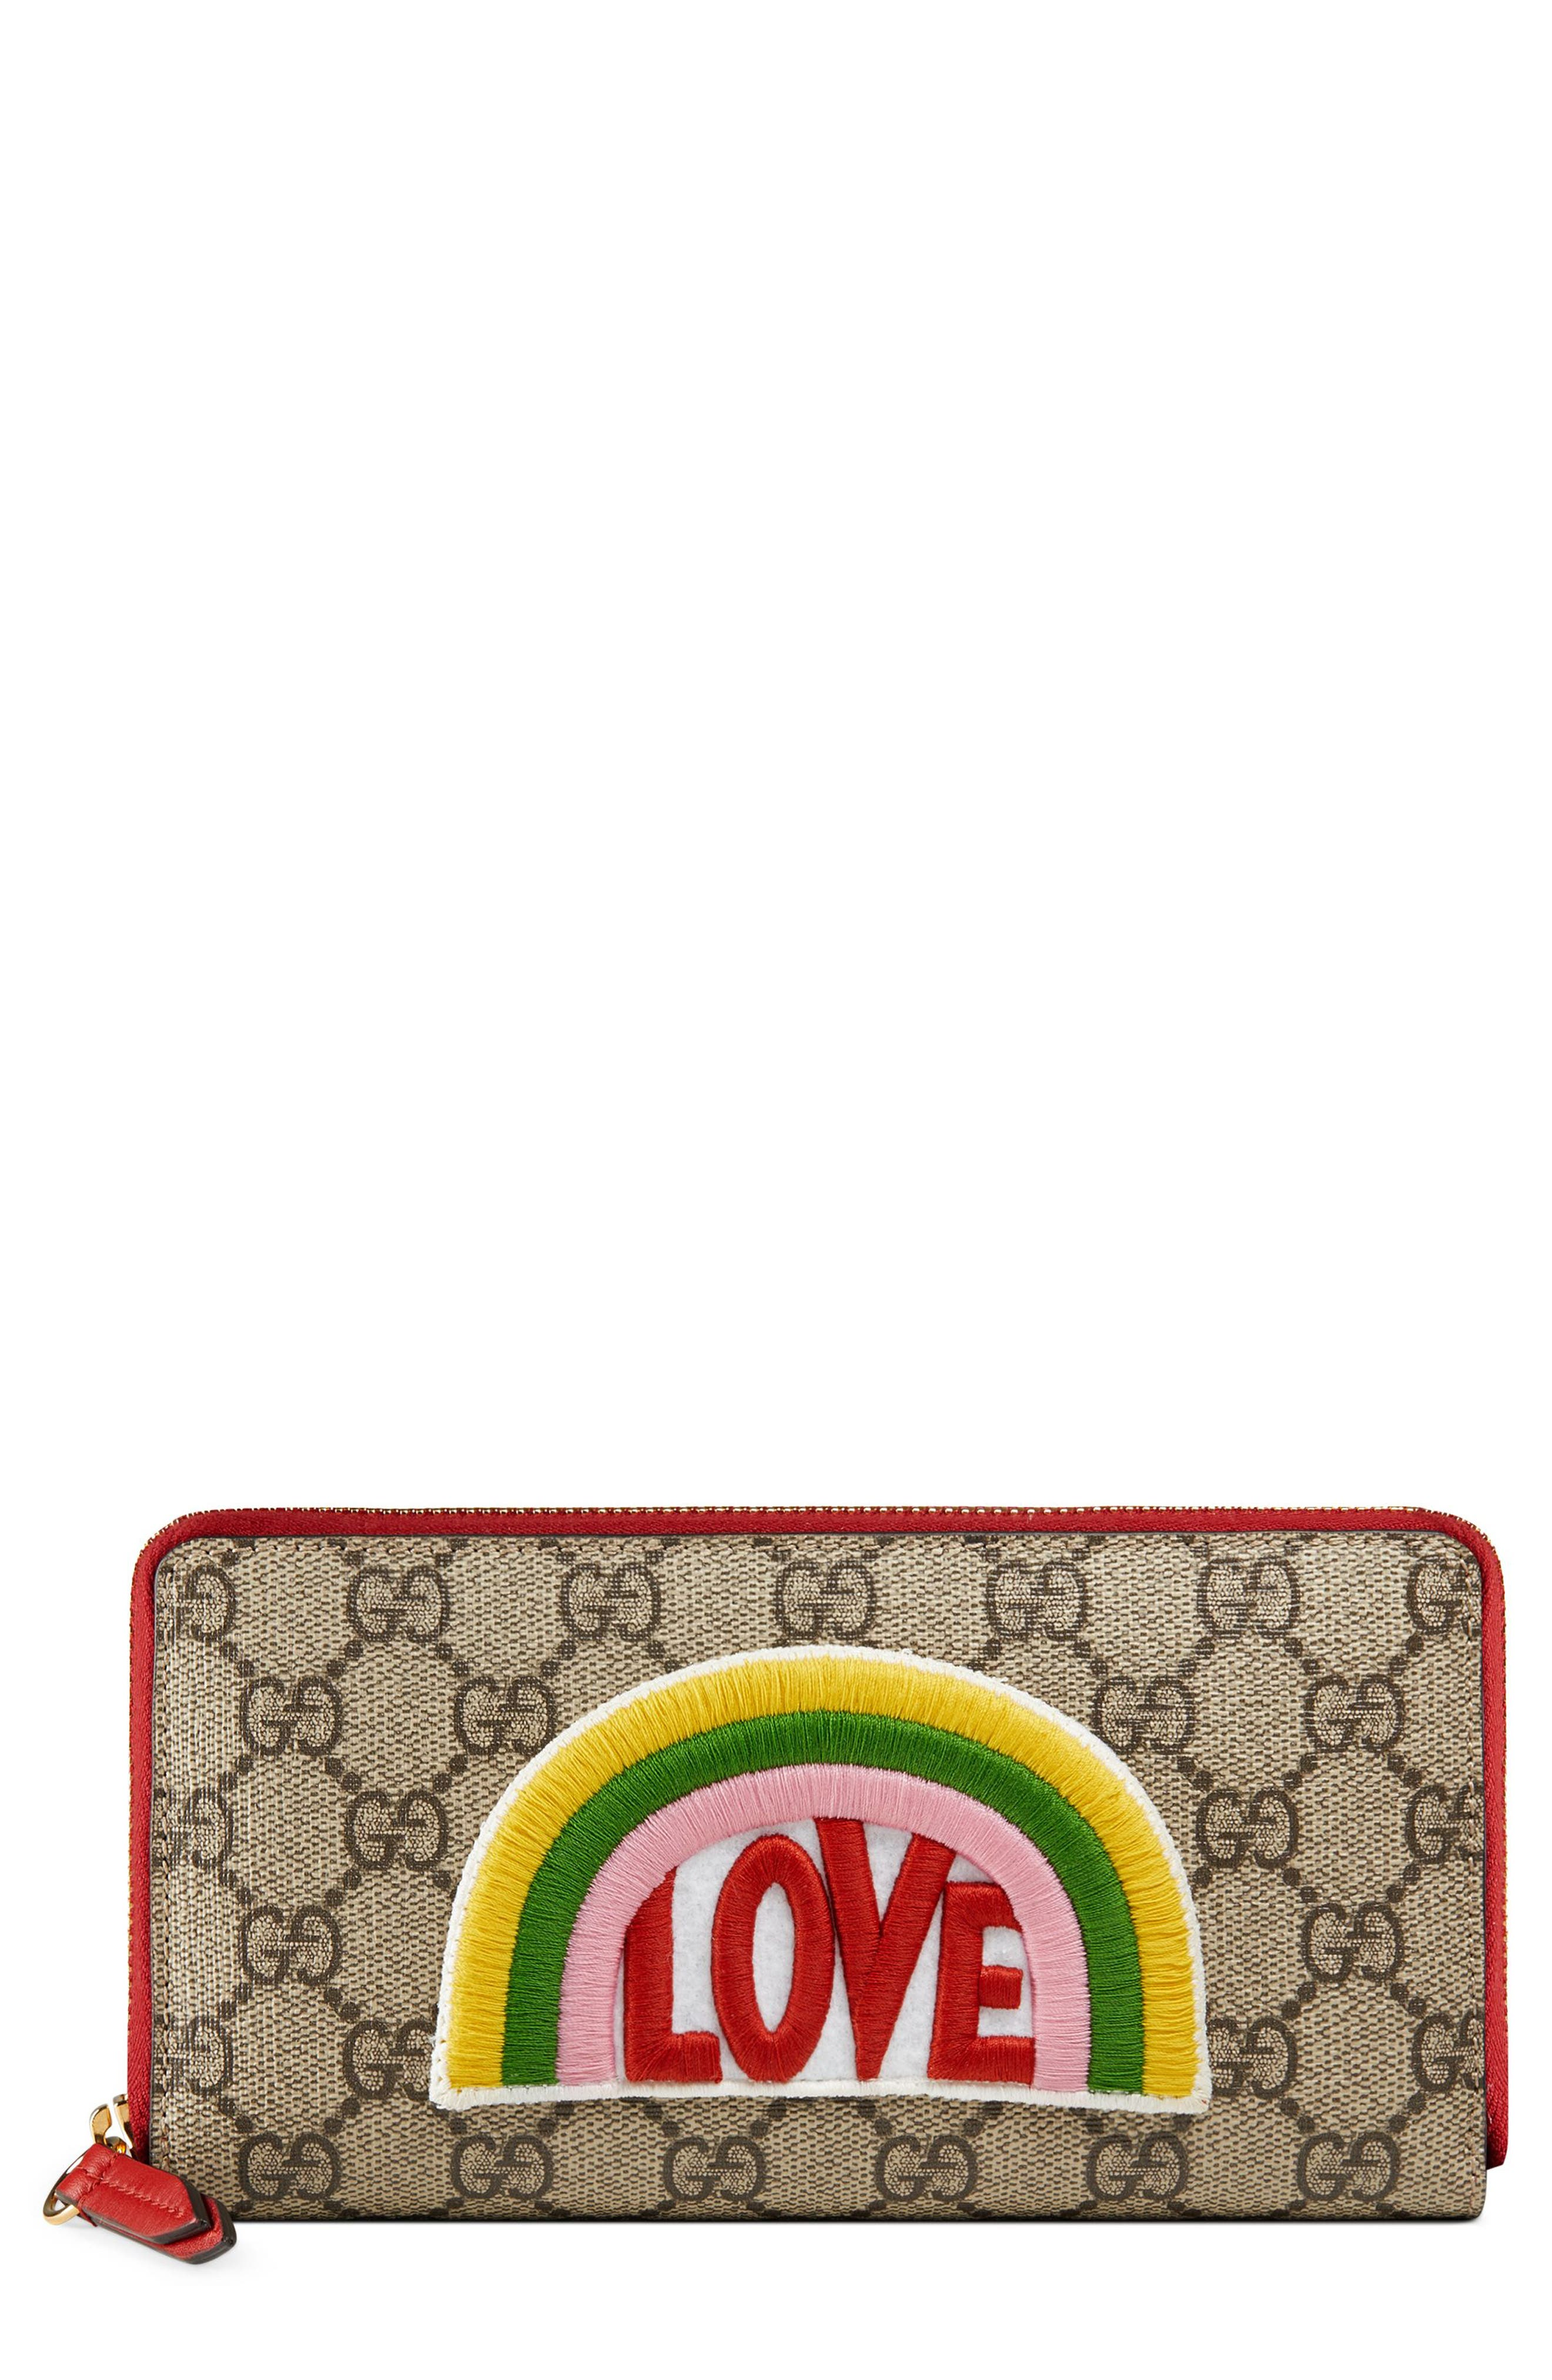 Gucci Embroidered Love Patch GG Supreme Zip Around Wallet